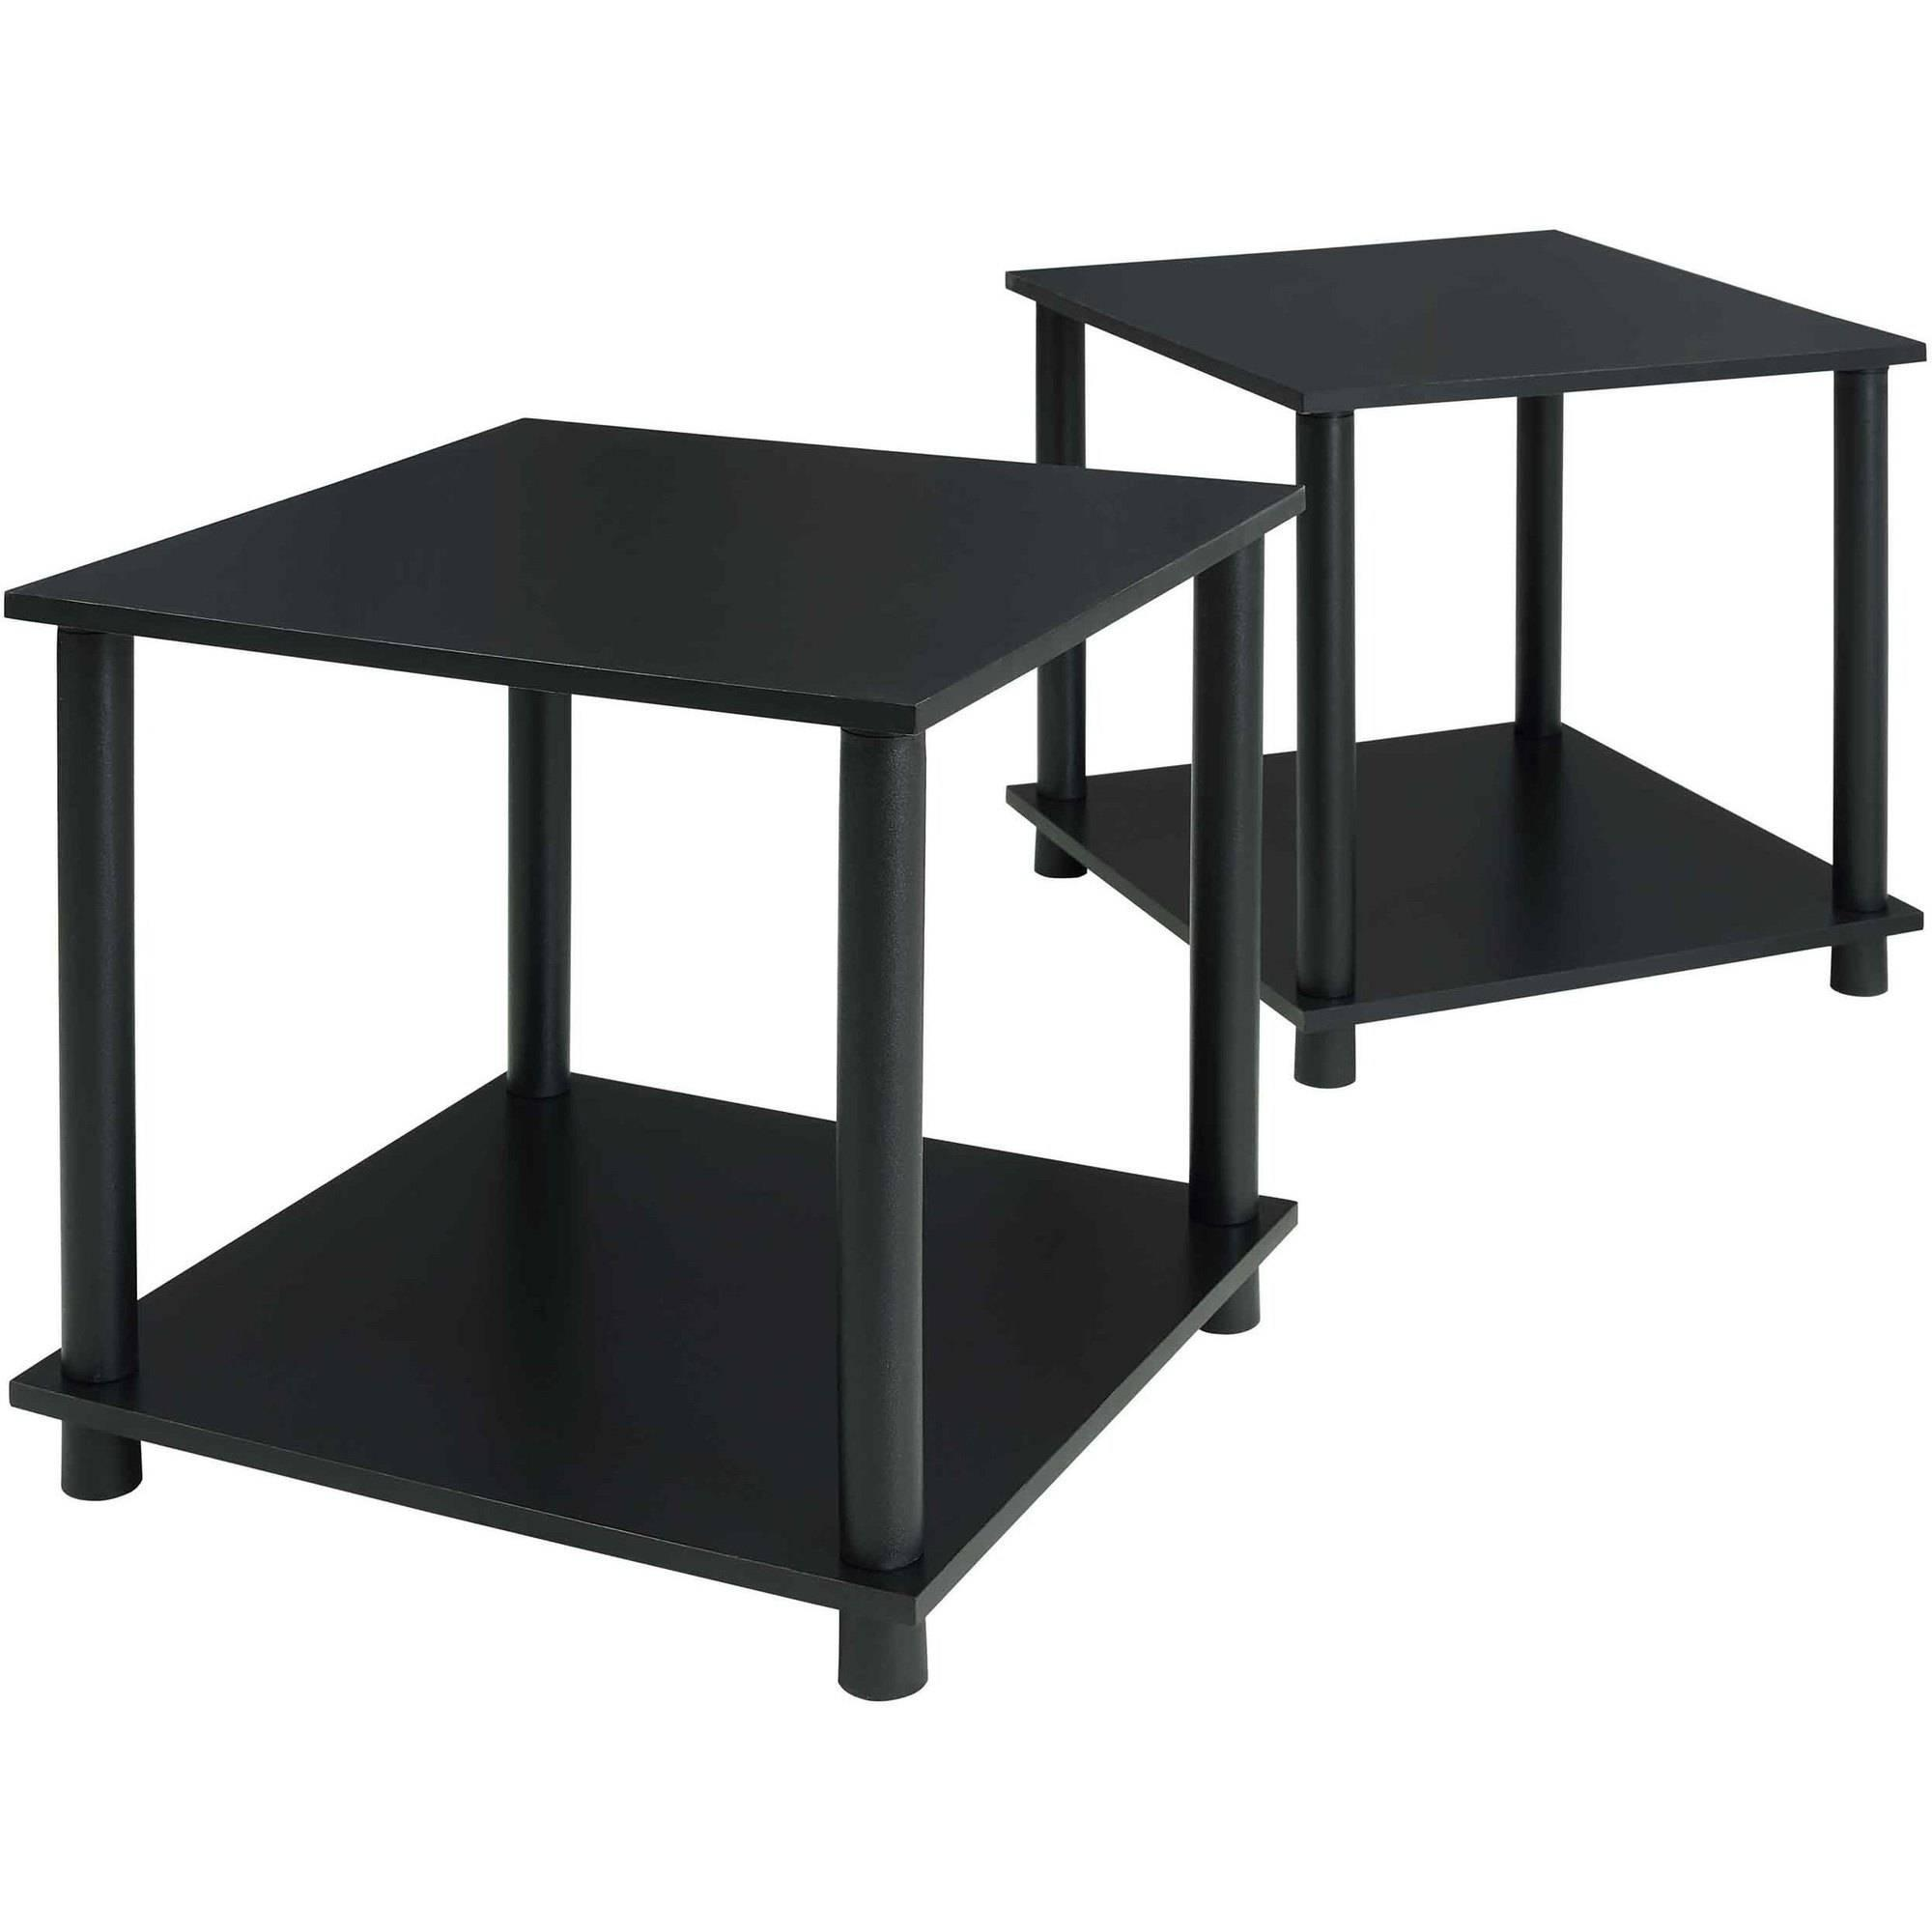 2x Mainstays No Tools End Tables